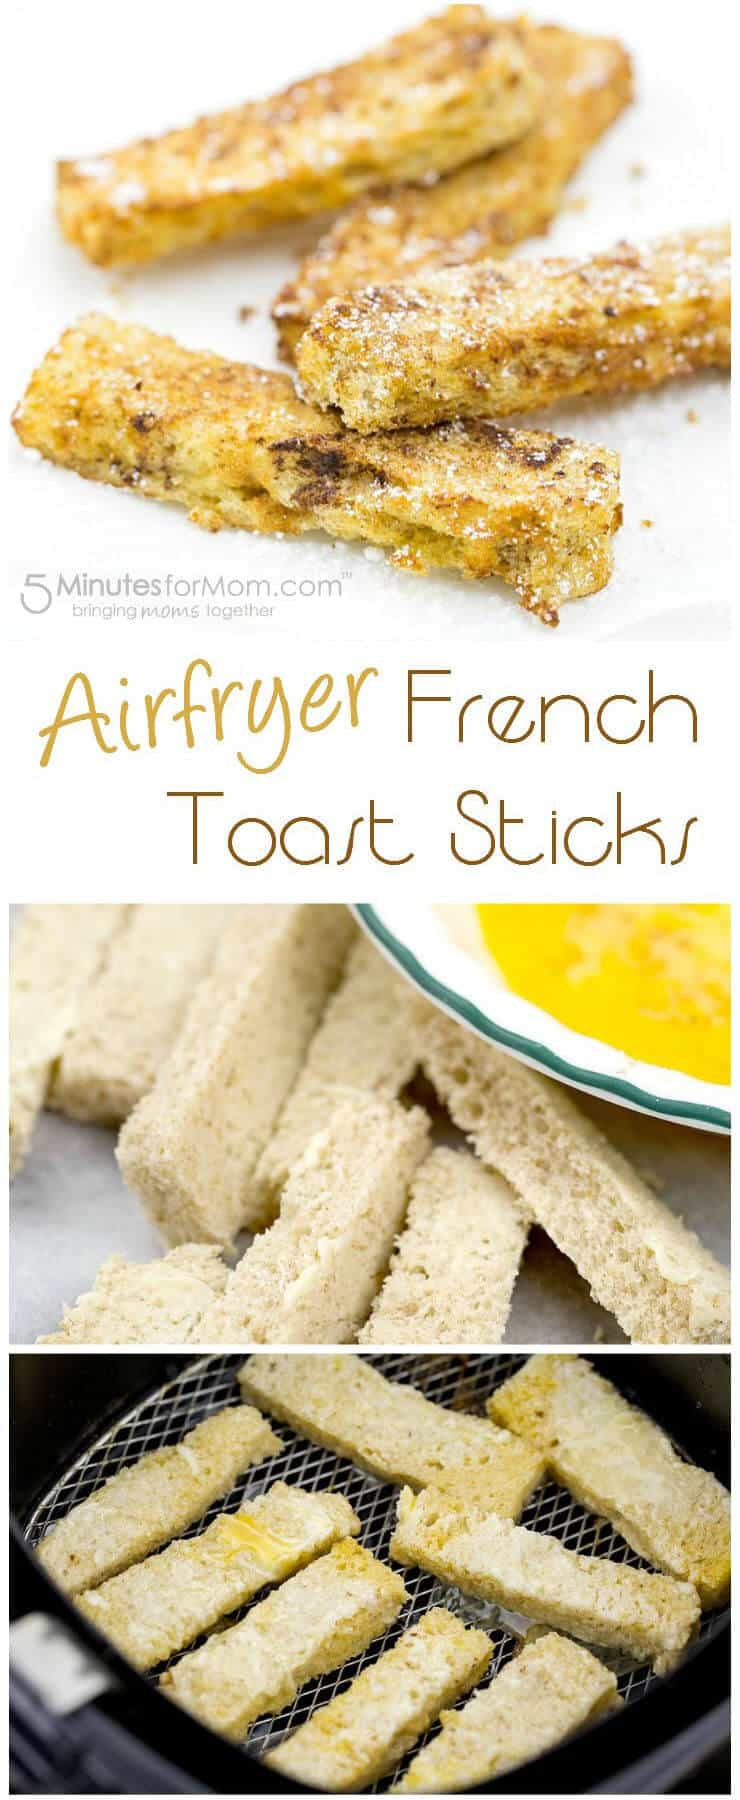 Airfryer French Toast Sticks - Easy Air Fryer Recipe